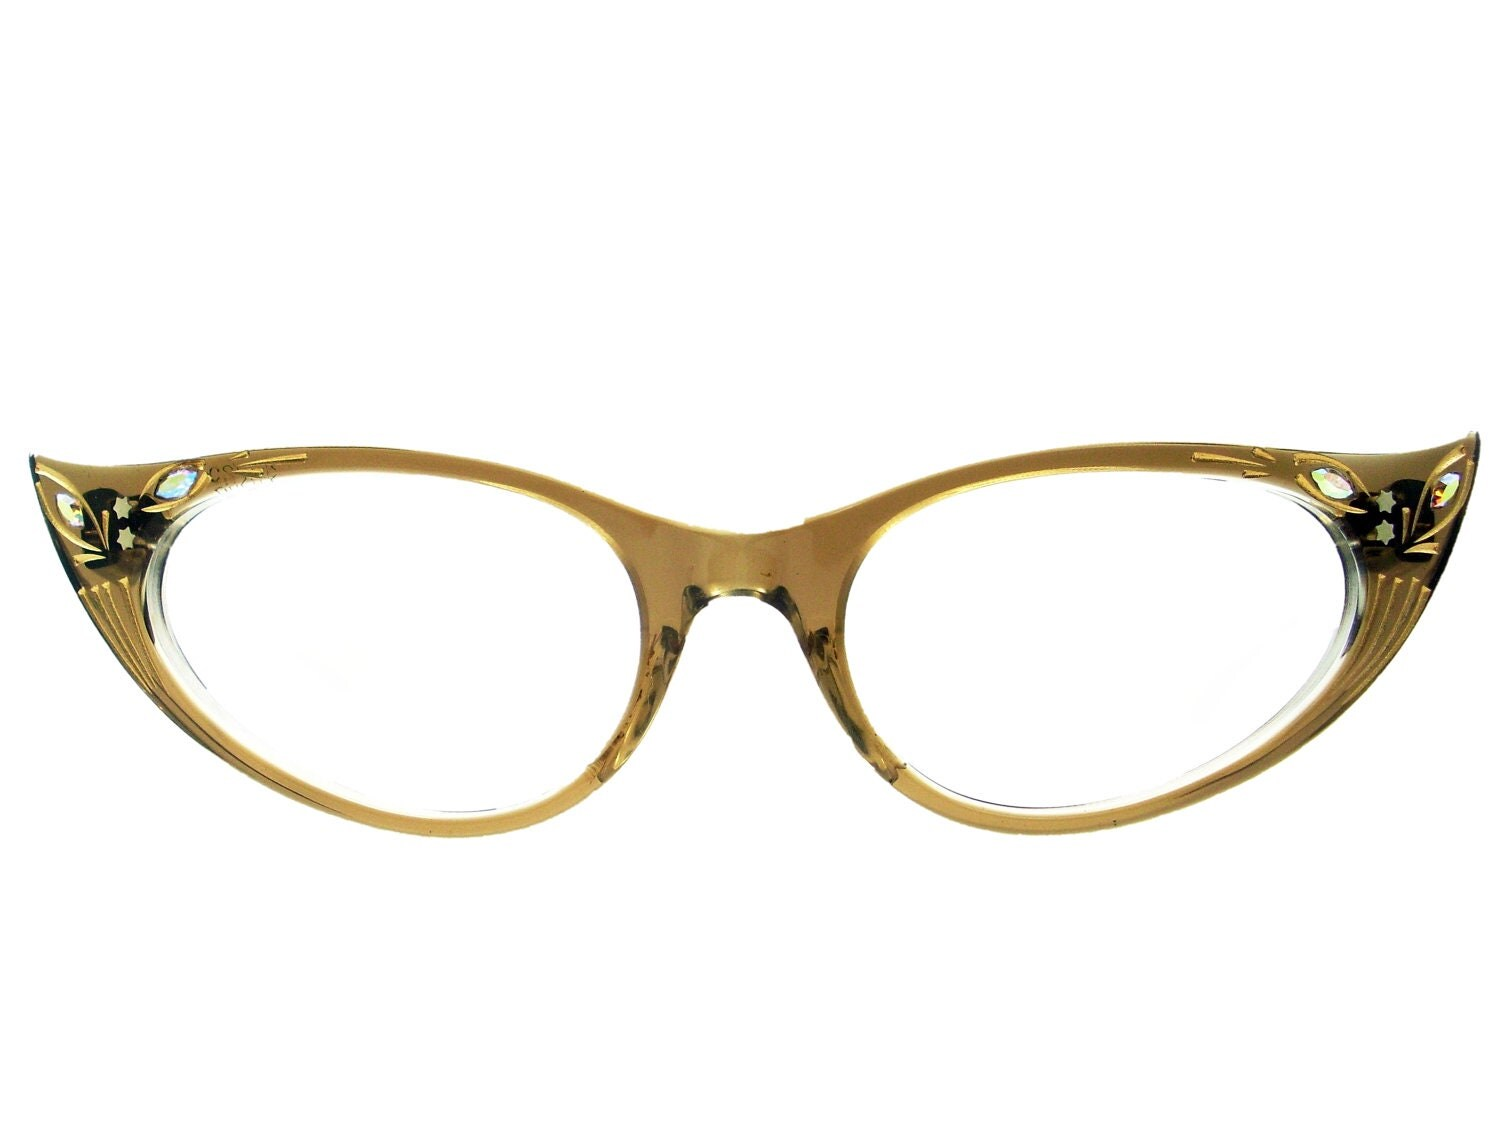 Vintage 50s Frame France Cat Eye Glasses Eyeglasses Sunglasses Glasses New